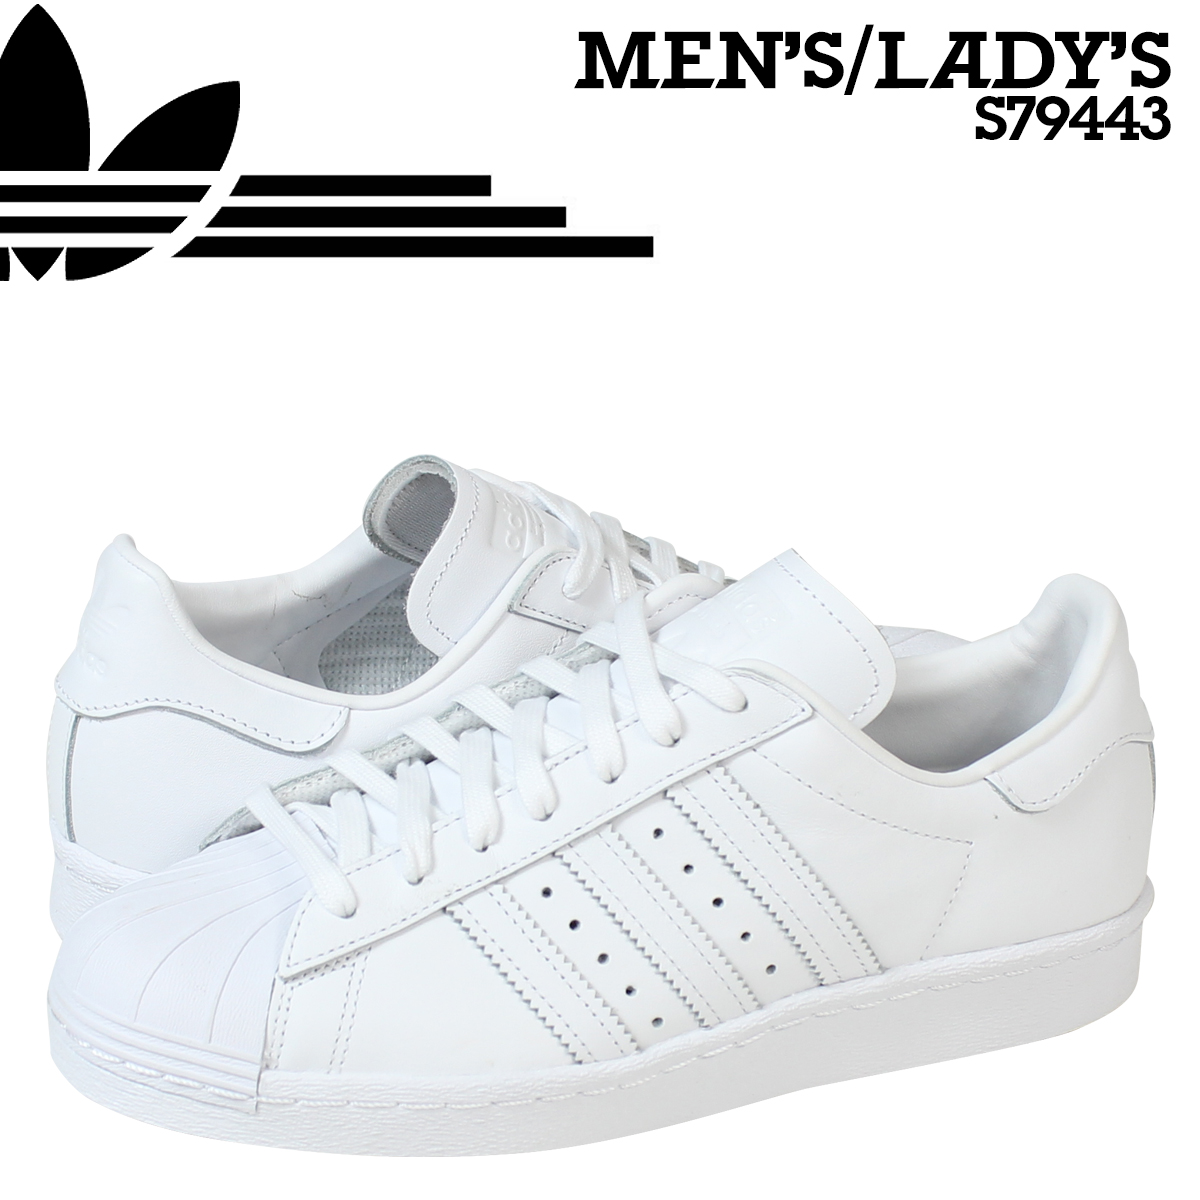 Originals Adidas Shop Sugar Online Superstar wqUPvSx1v